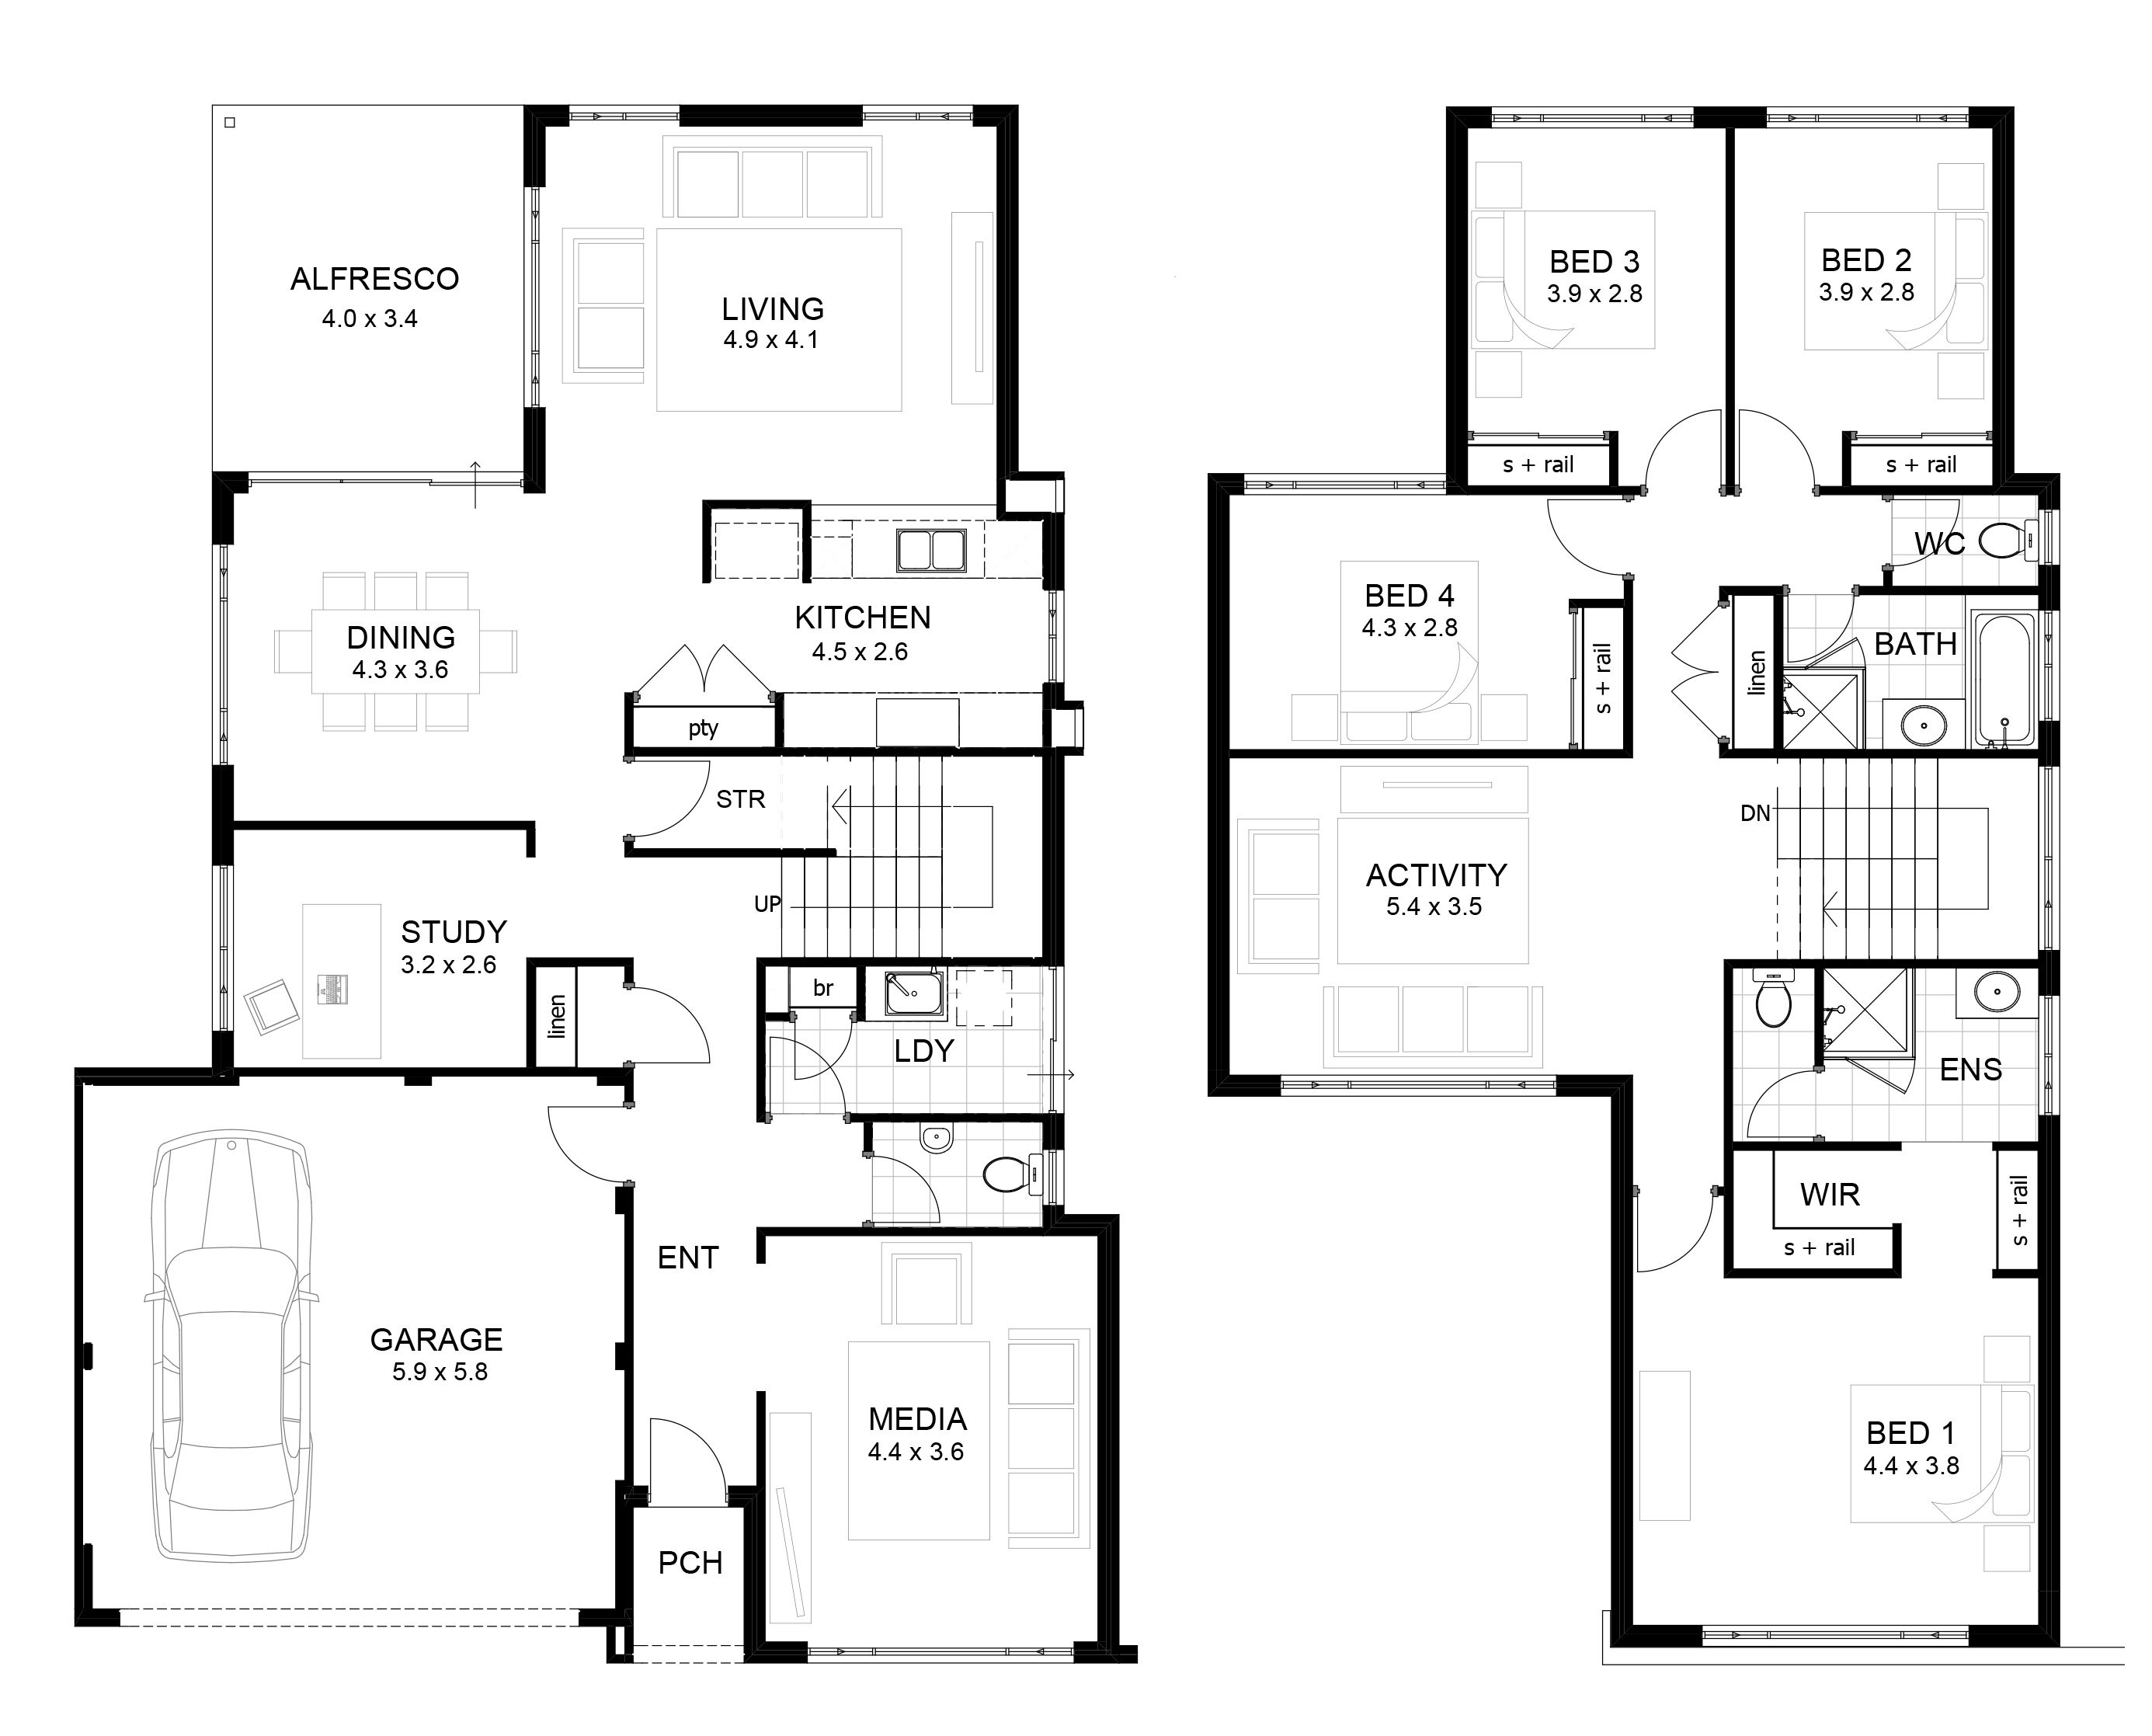 Home Design Modern 2 Story House Floor Plans Shabchic Style Regarding 2storyhouseplans Double Storey House Plans Two Storey House Plans House Plans Australia